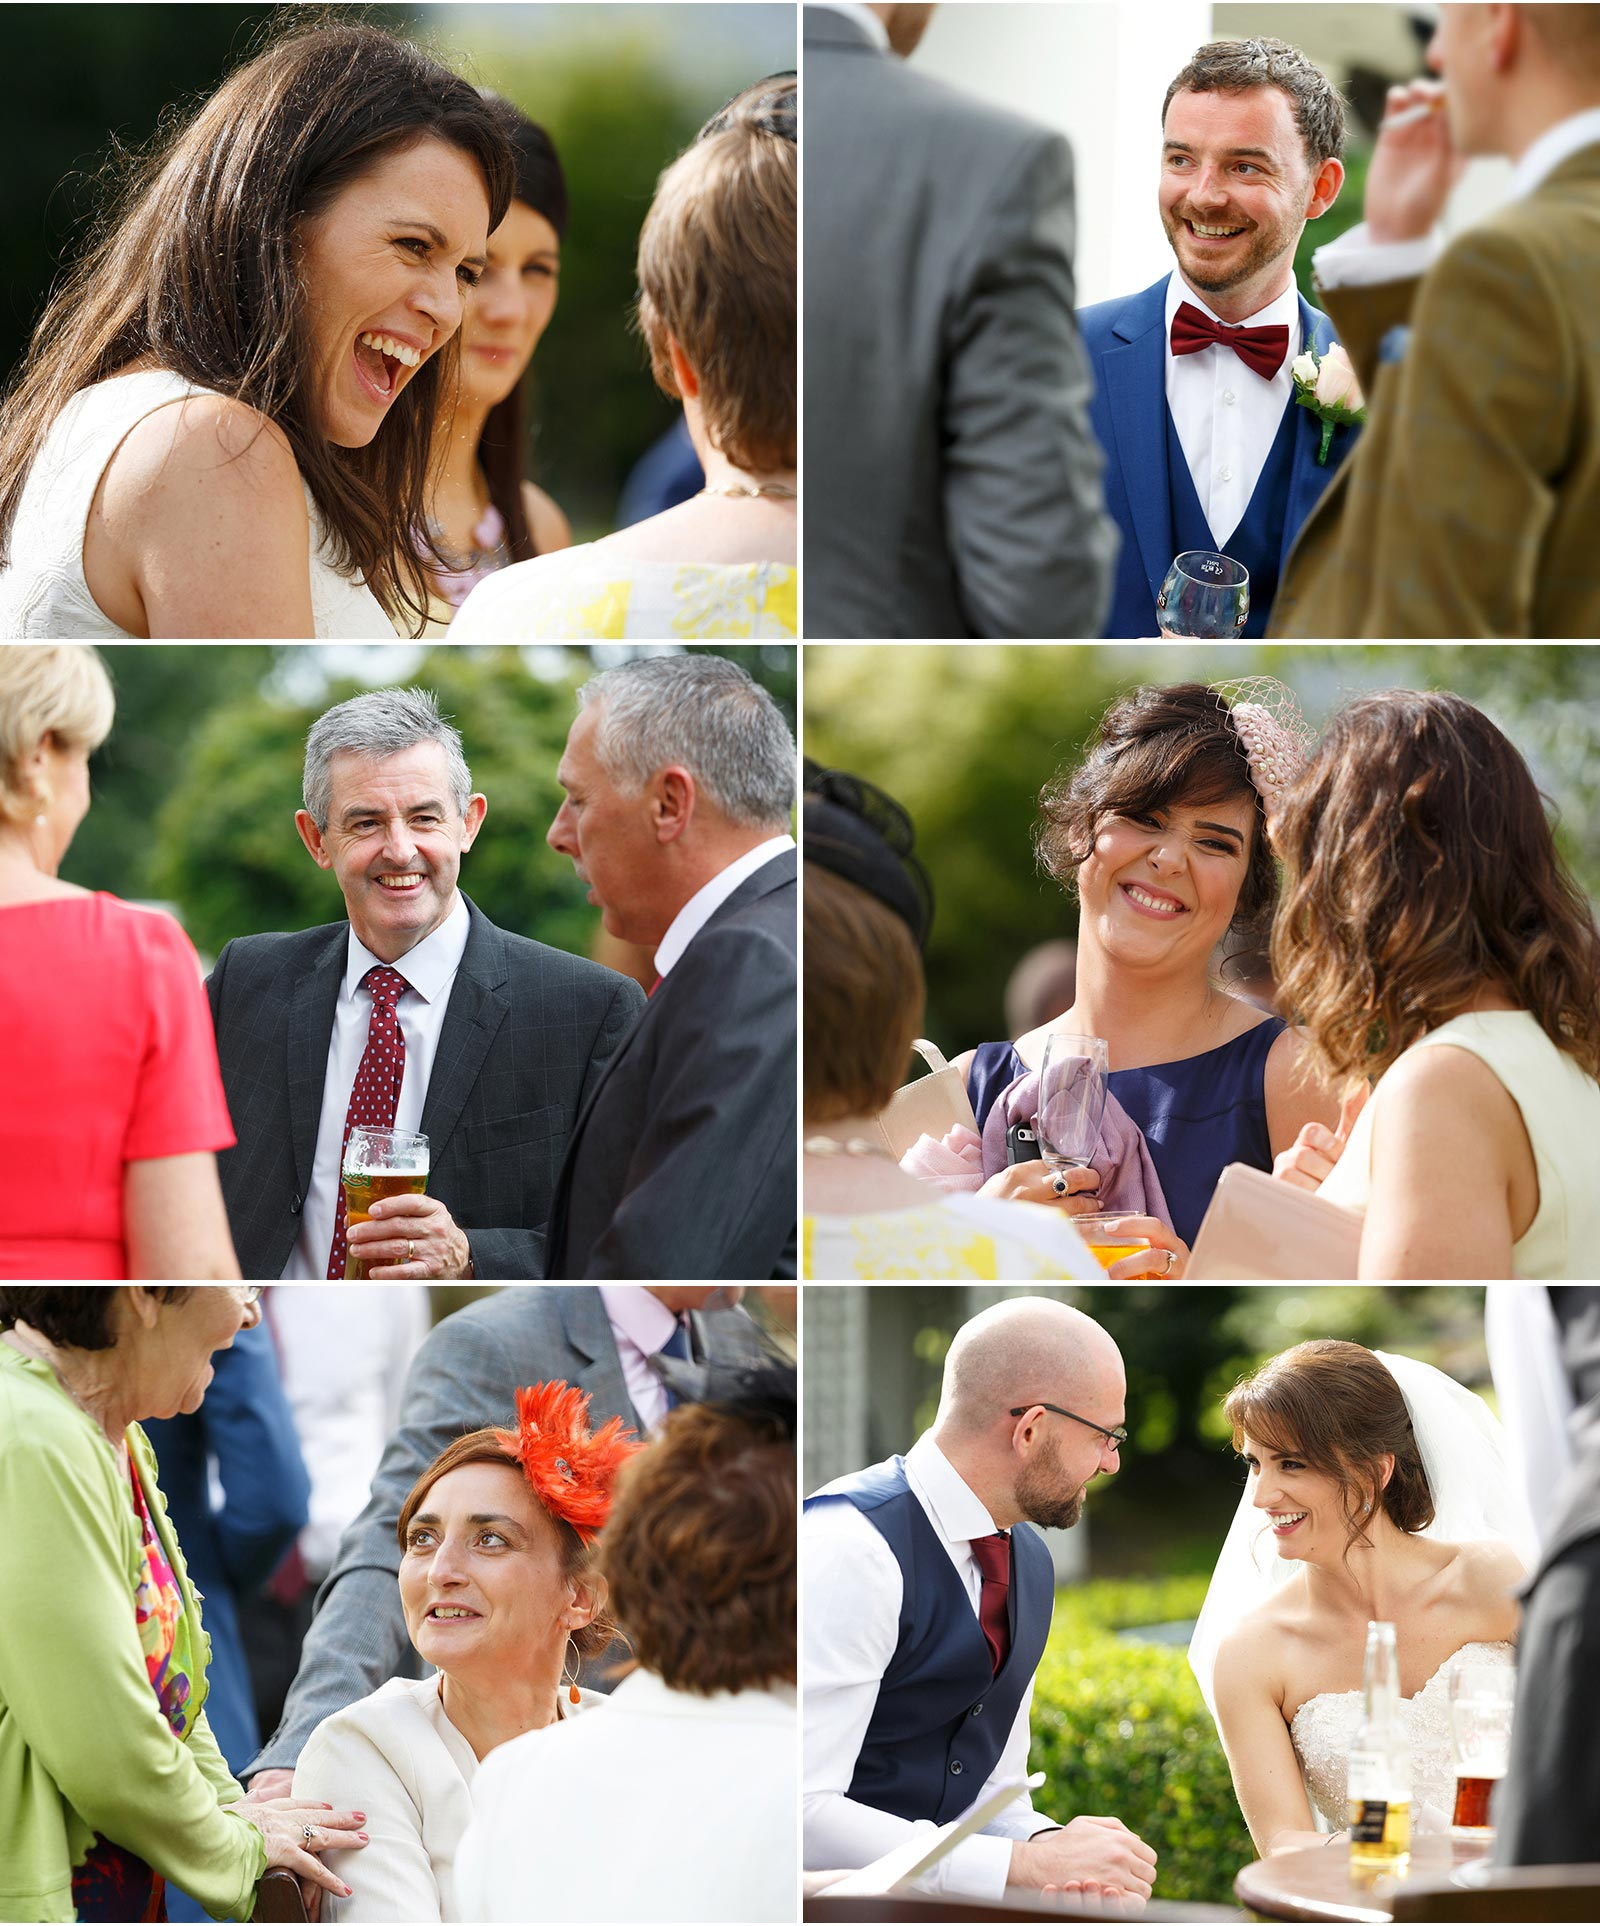 candid shots of wedding guests enjoying the reception at Ballygarry House in Tralee